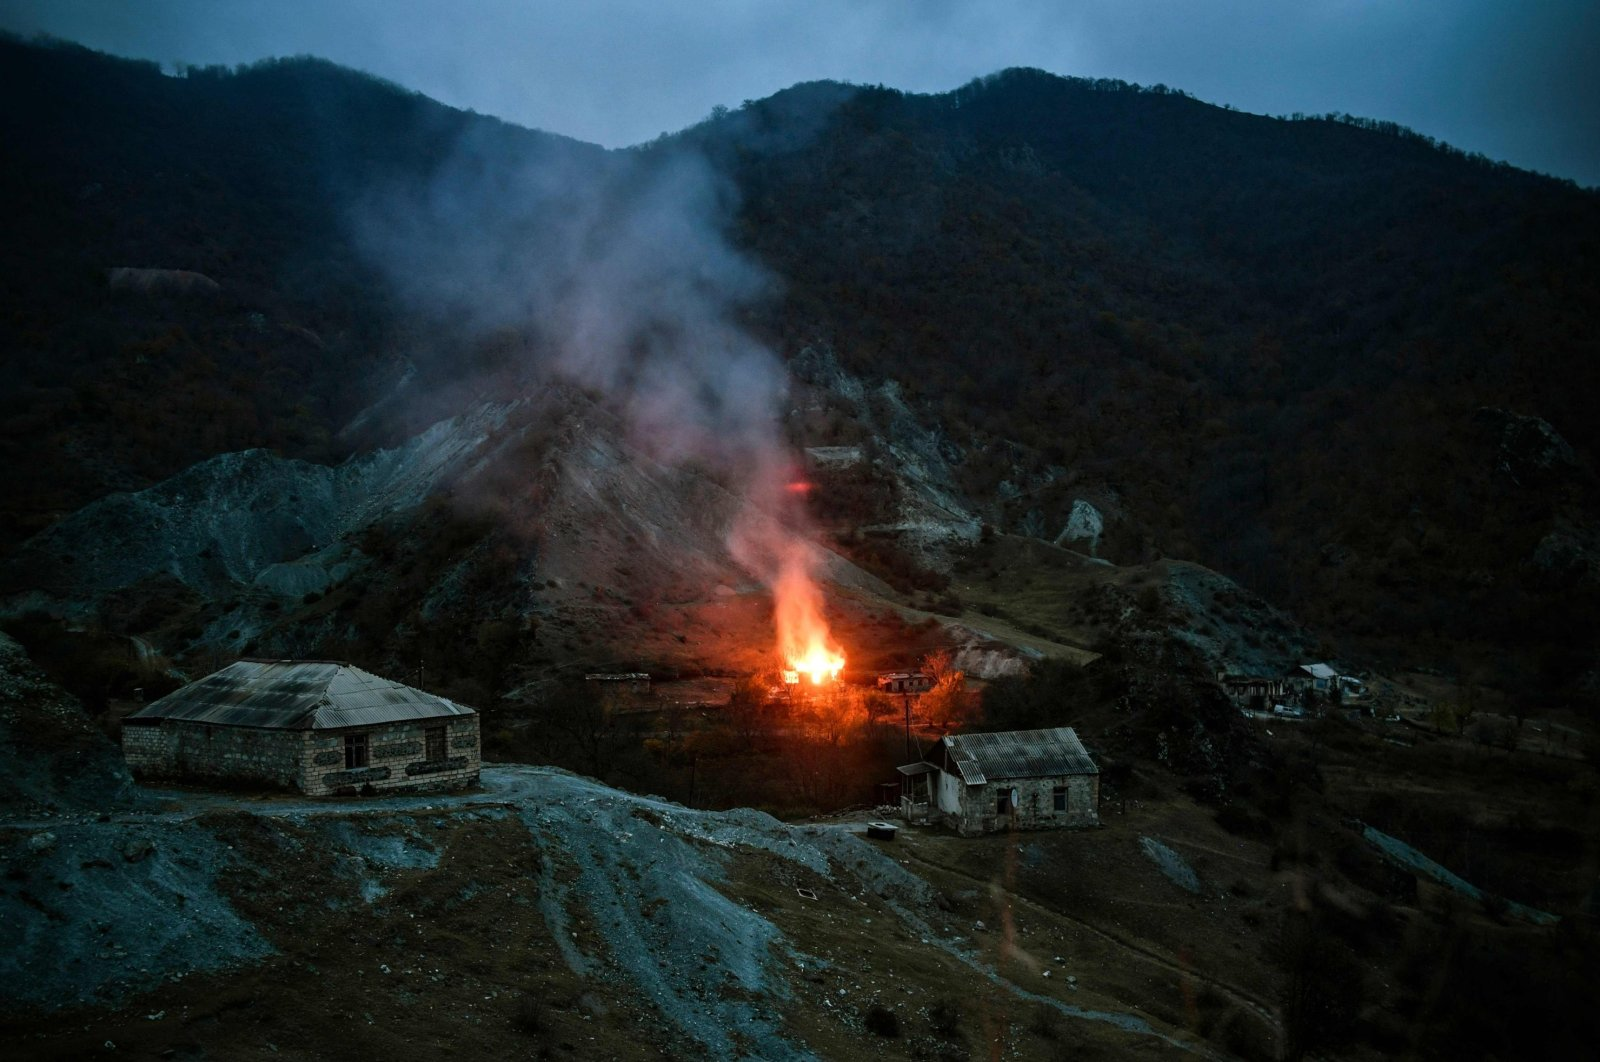 A house burns in a village outside the town of Kalbajar, following the signing of a peace agreement to end the military conflict between Armenia and Azerbaijan over the Nagorno-Karabakh region, Nov. 14, 2020. (AFP Photo)